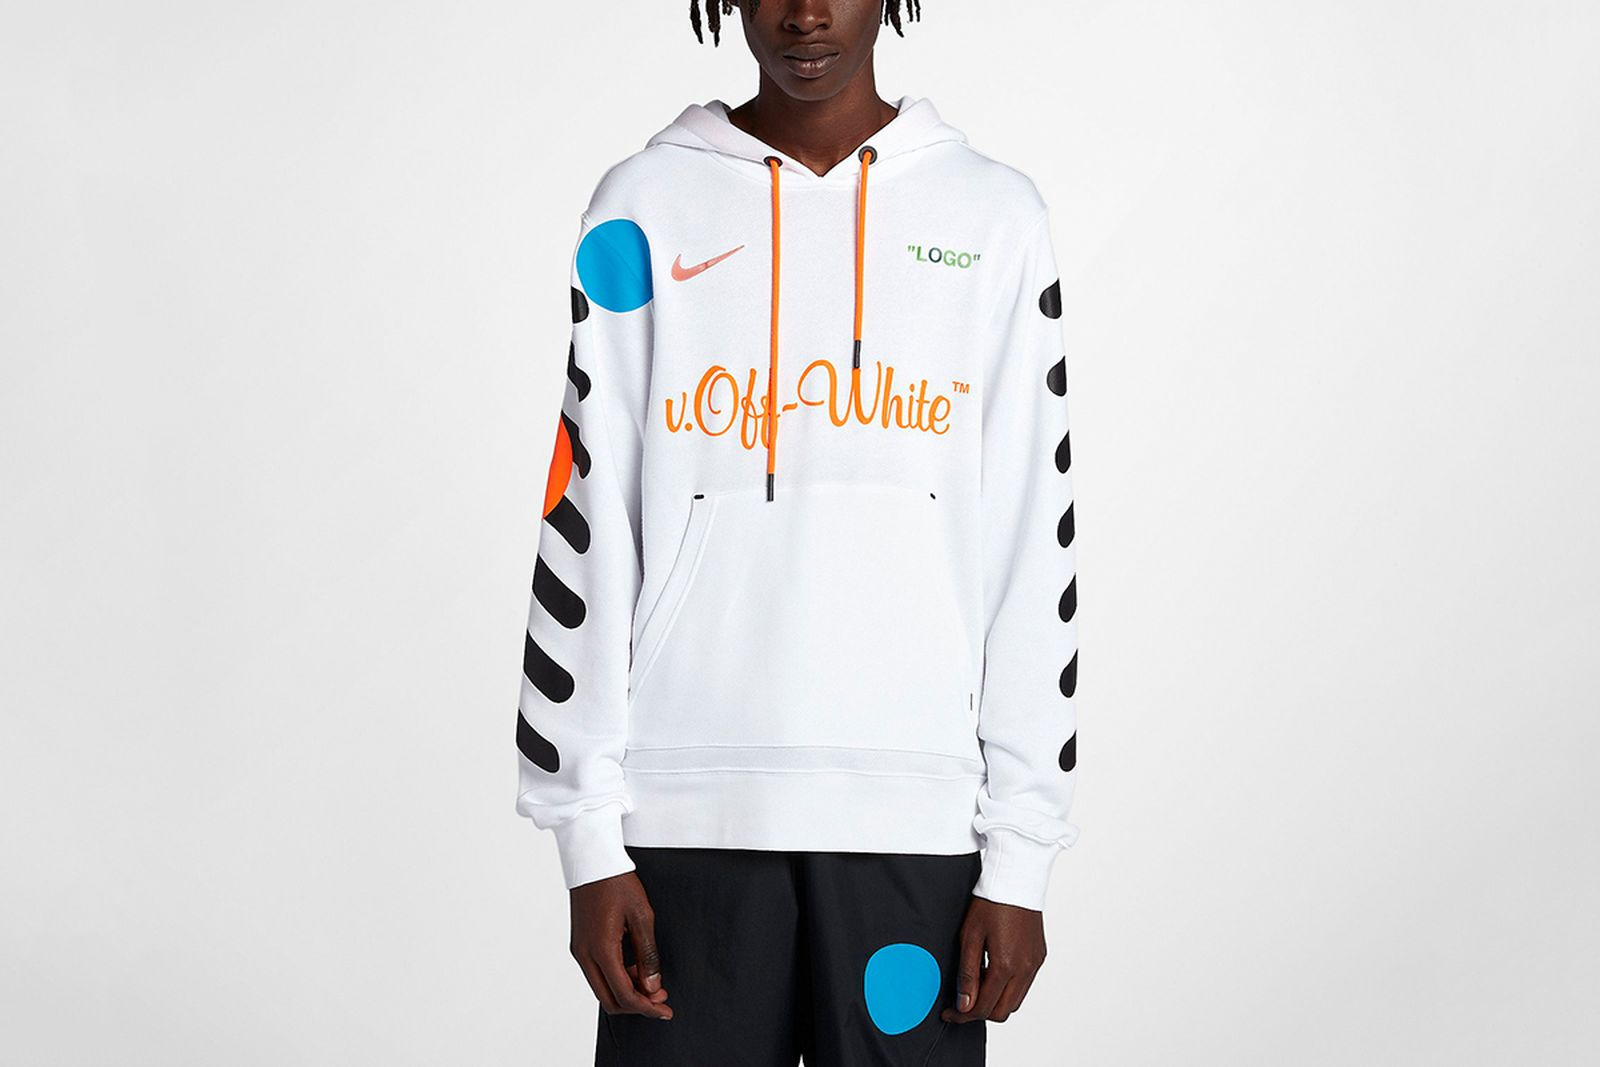 hoodie white 2018 FIFA World Cup Nike OFF-WHITE c/o Virgil Abloh